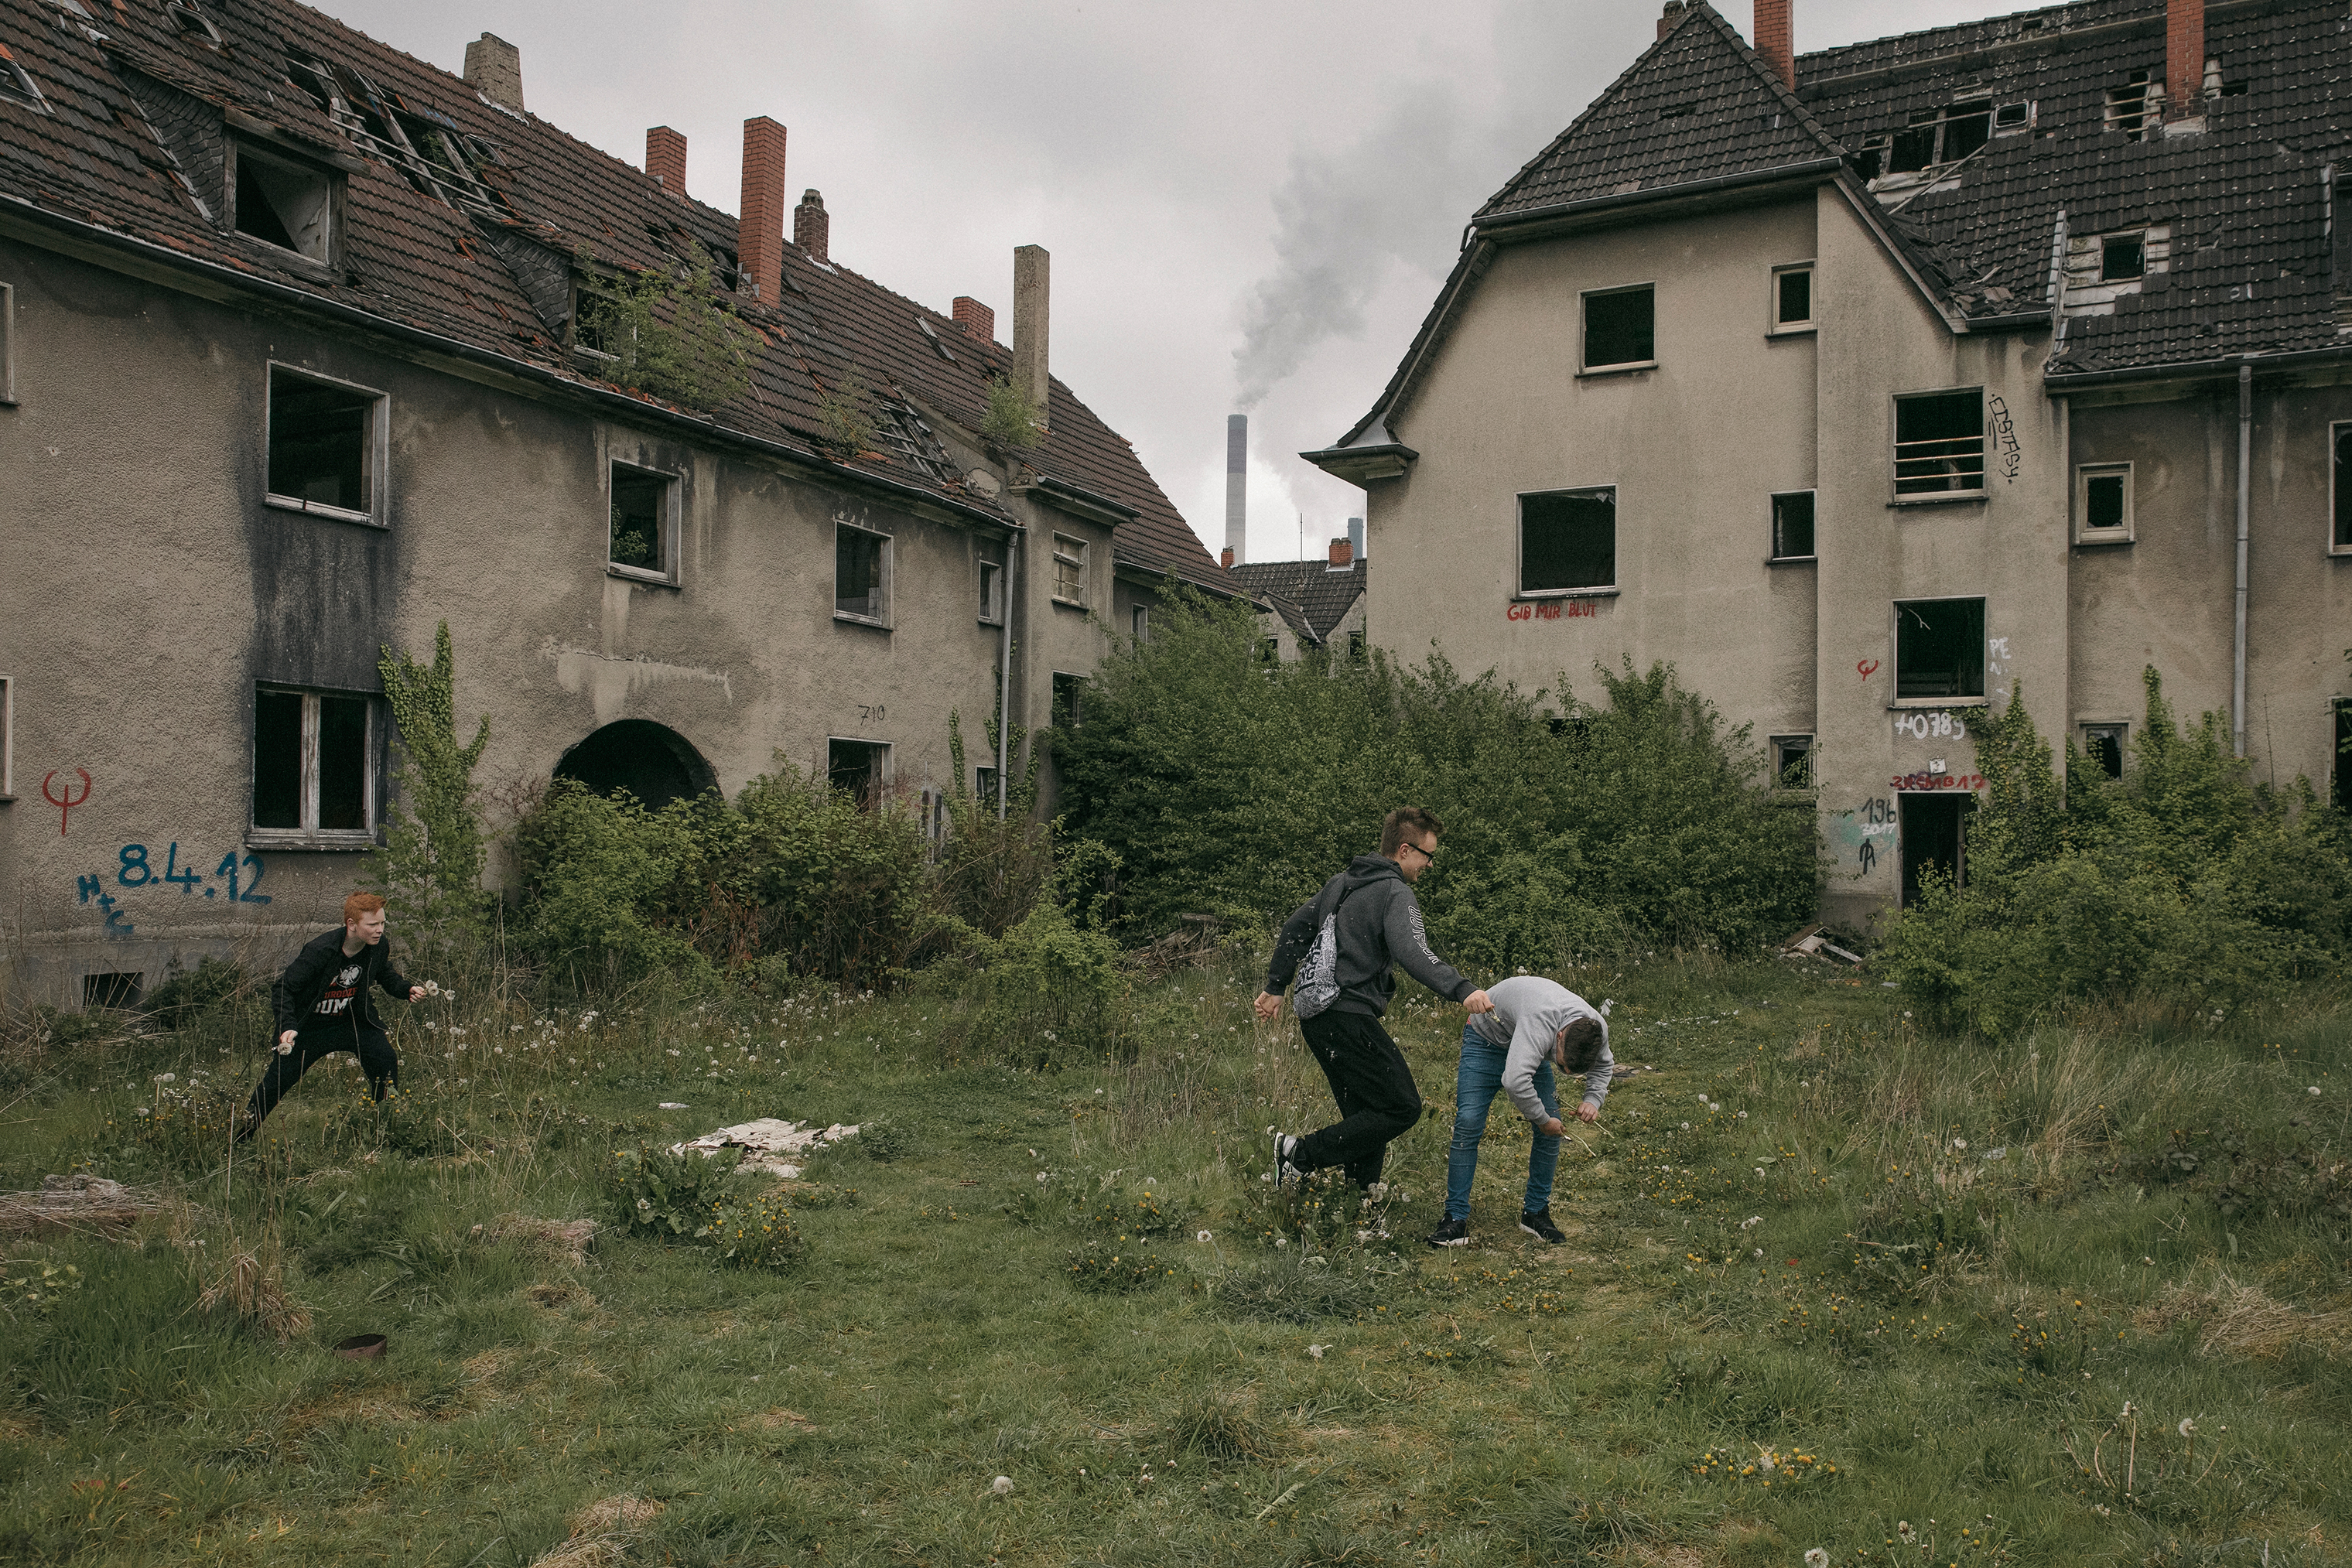 Children of Polish migrant workers play in an abandoned mining settlement in Gladbeck, not far from the mine.